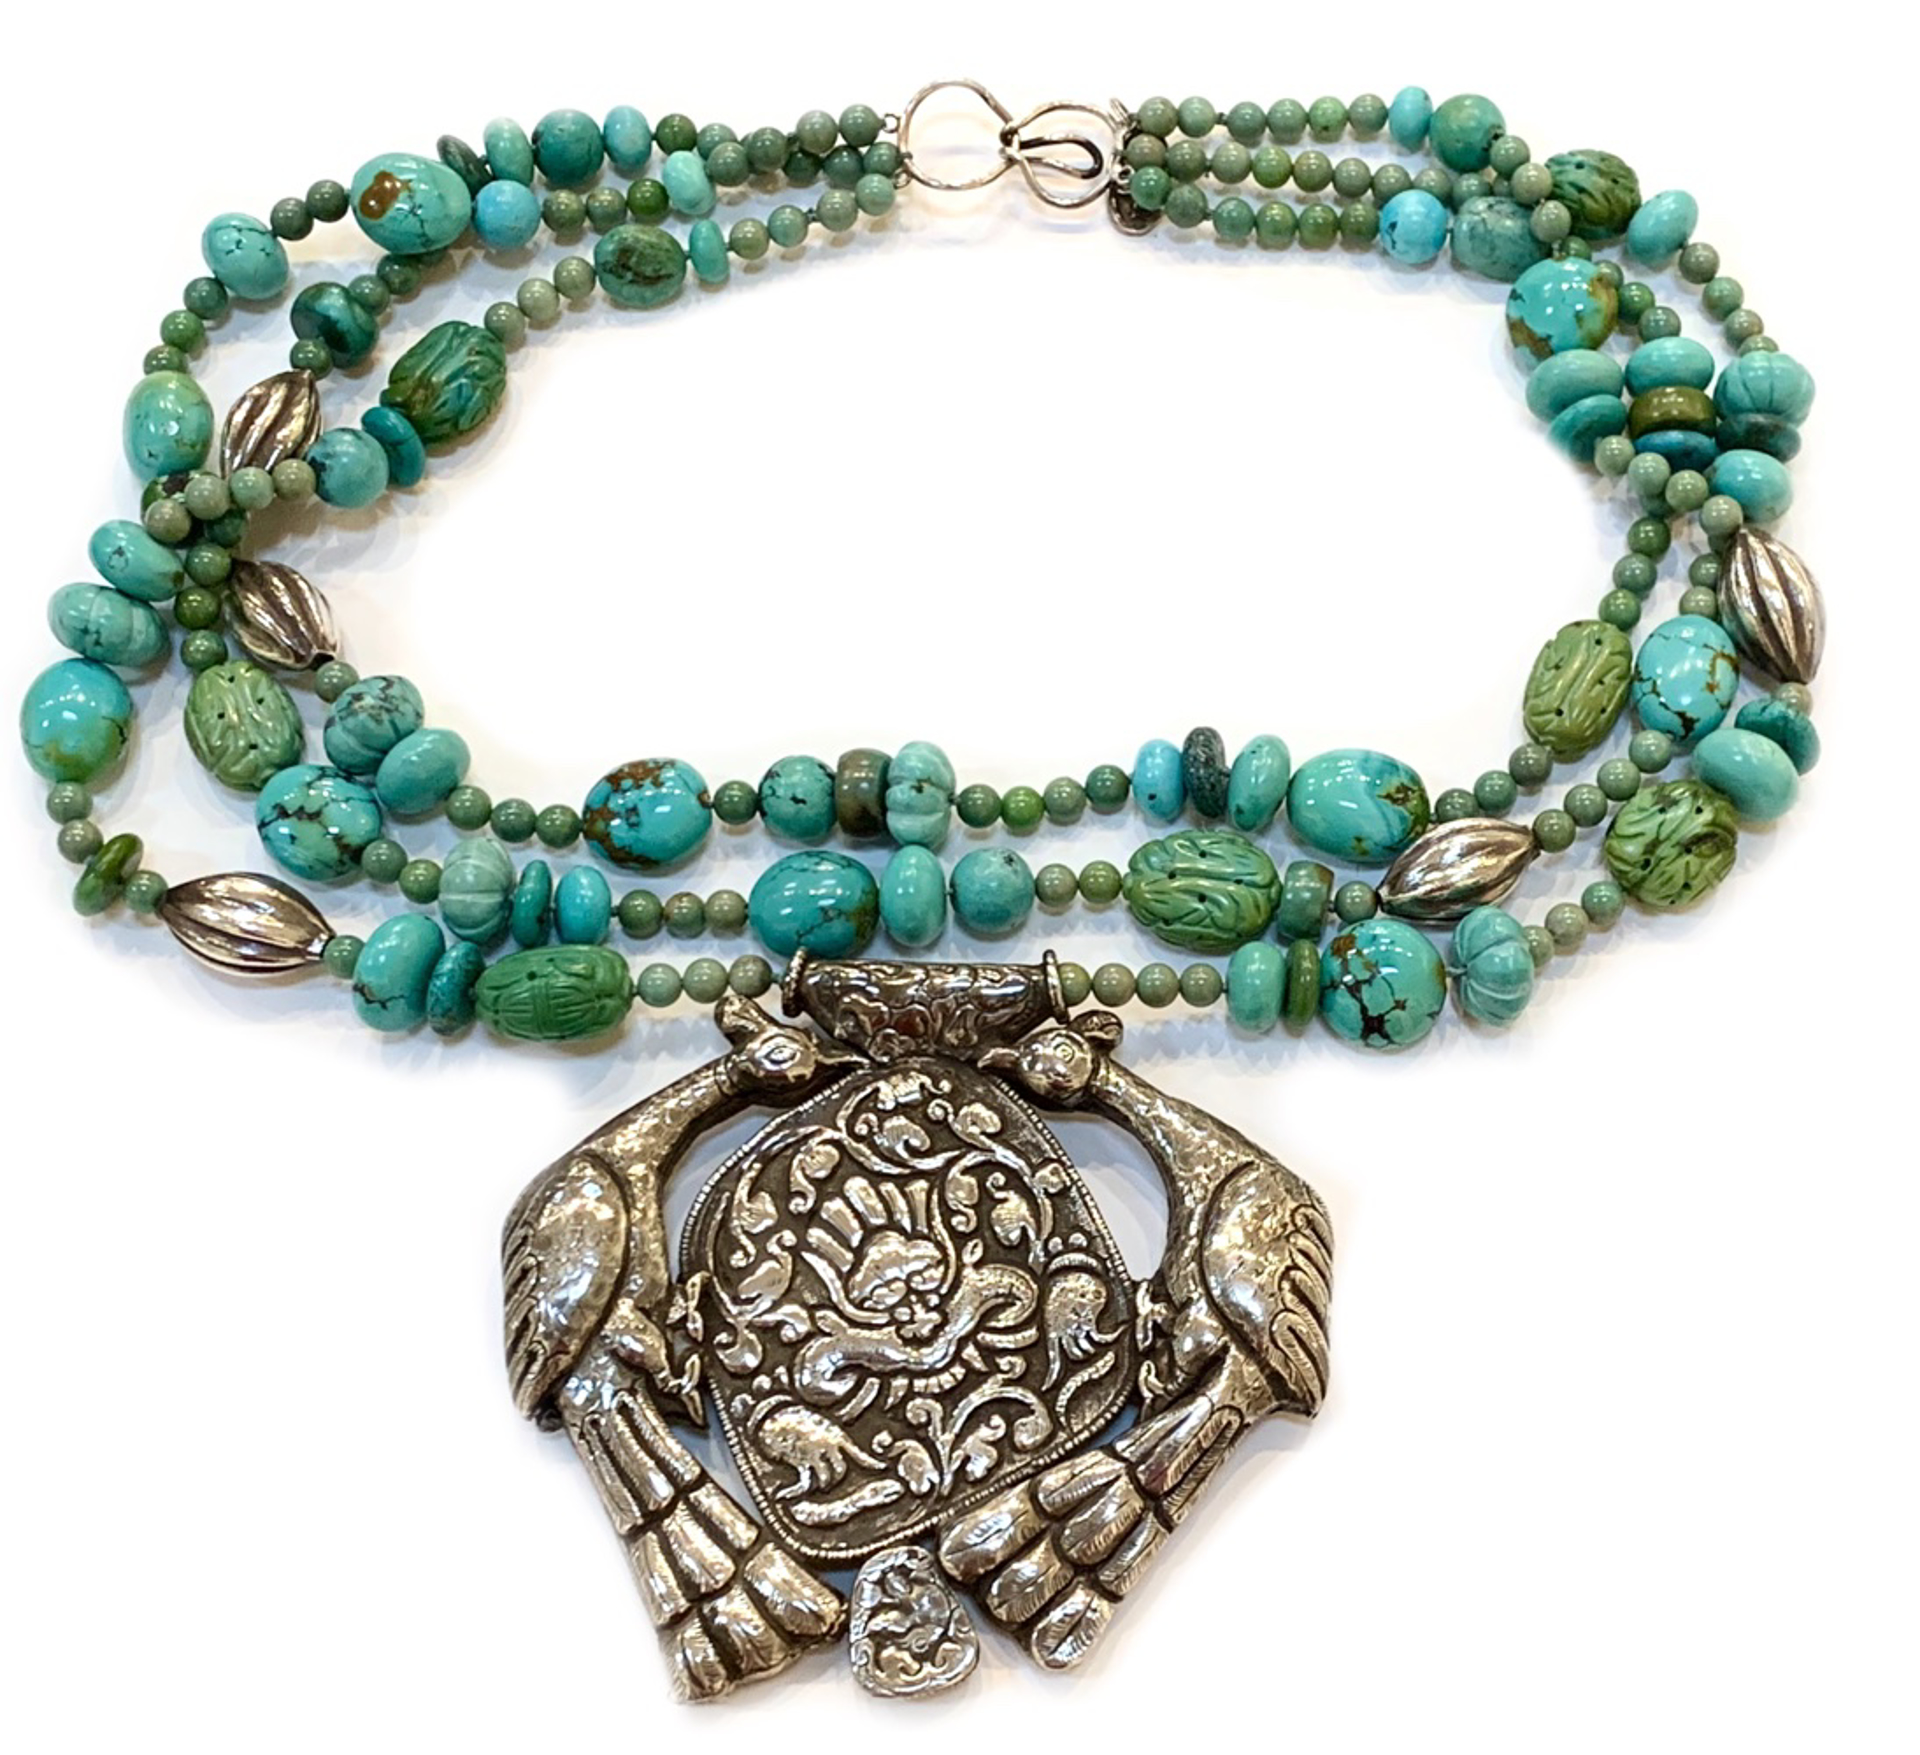 PP1 - 3 Strand necklace w Turquoise, Sterling, melon, Pendent from Tibet by Kim Yubeta